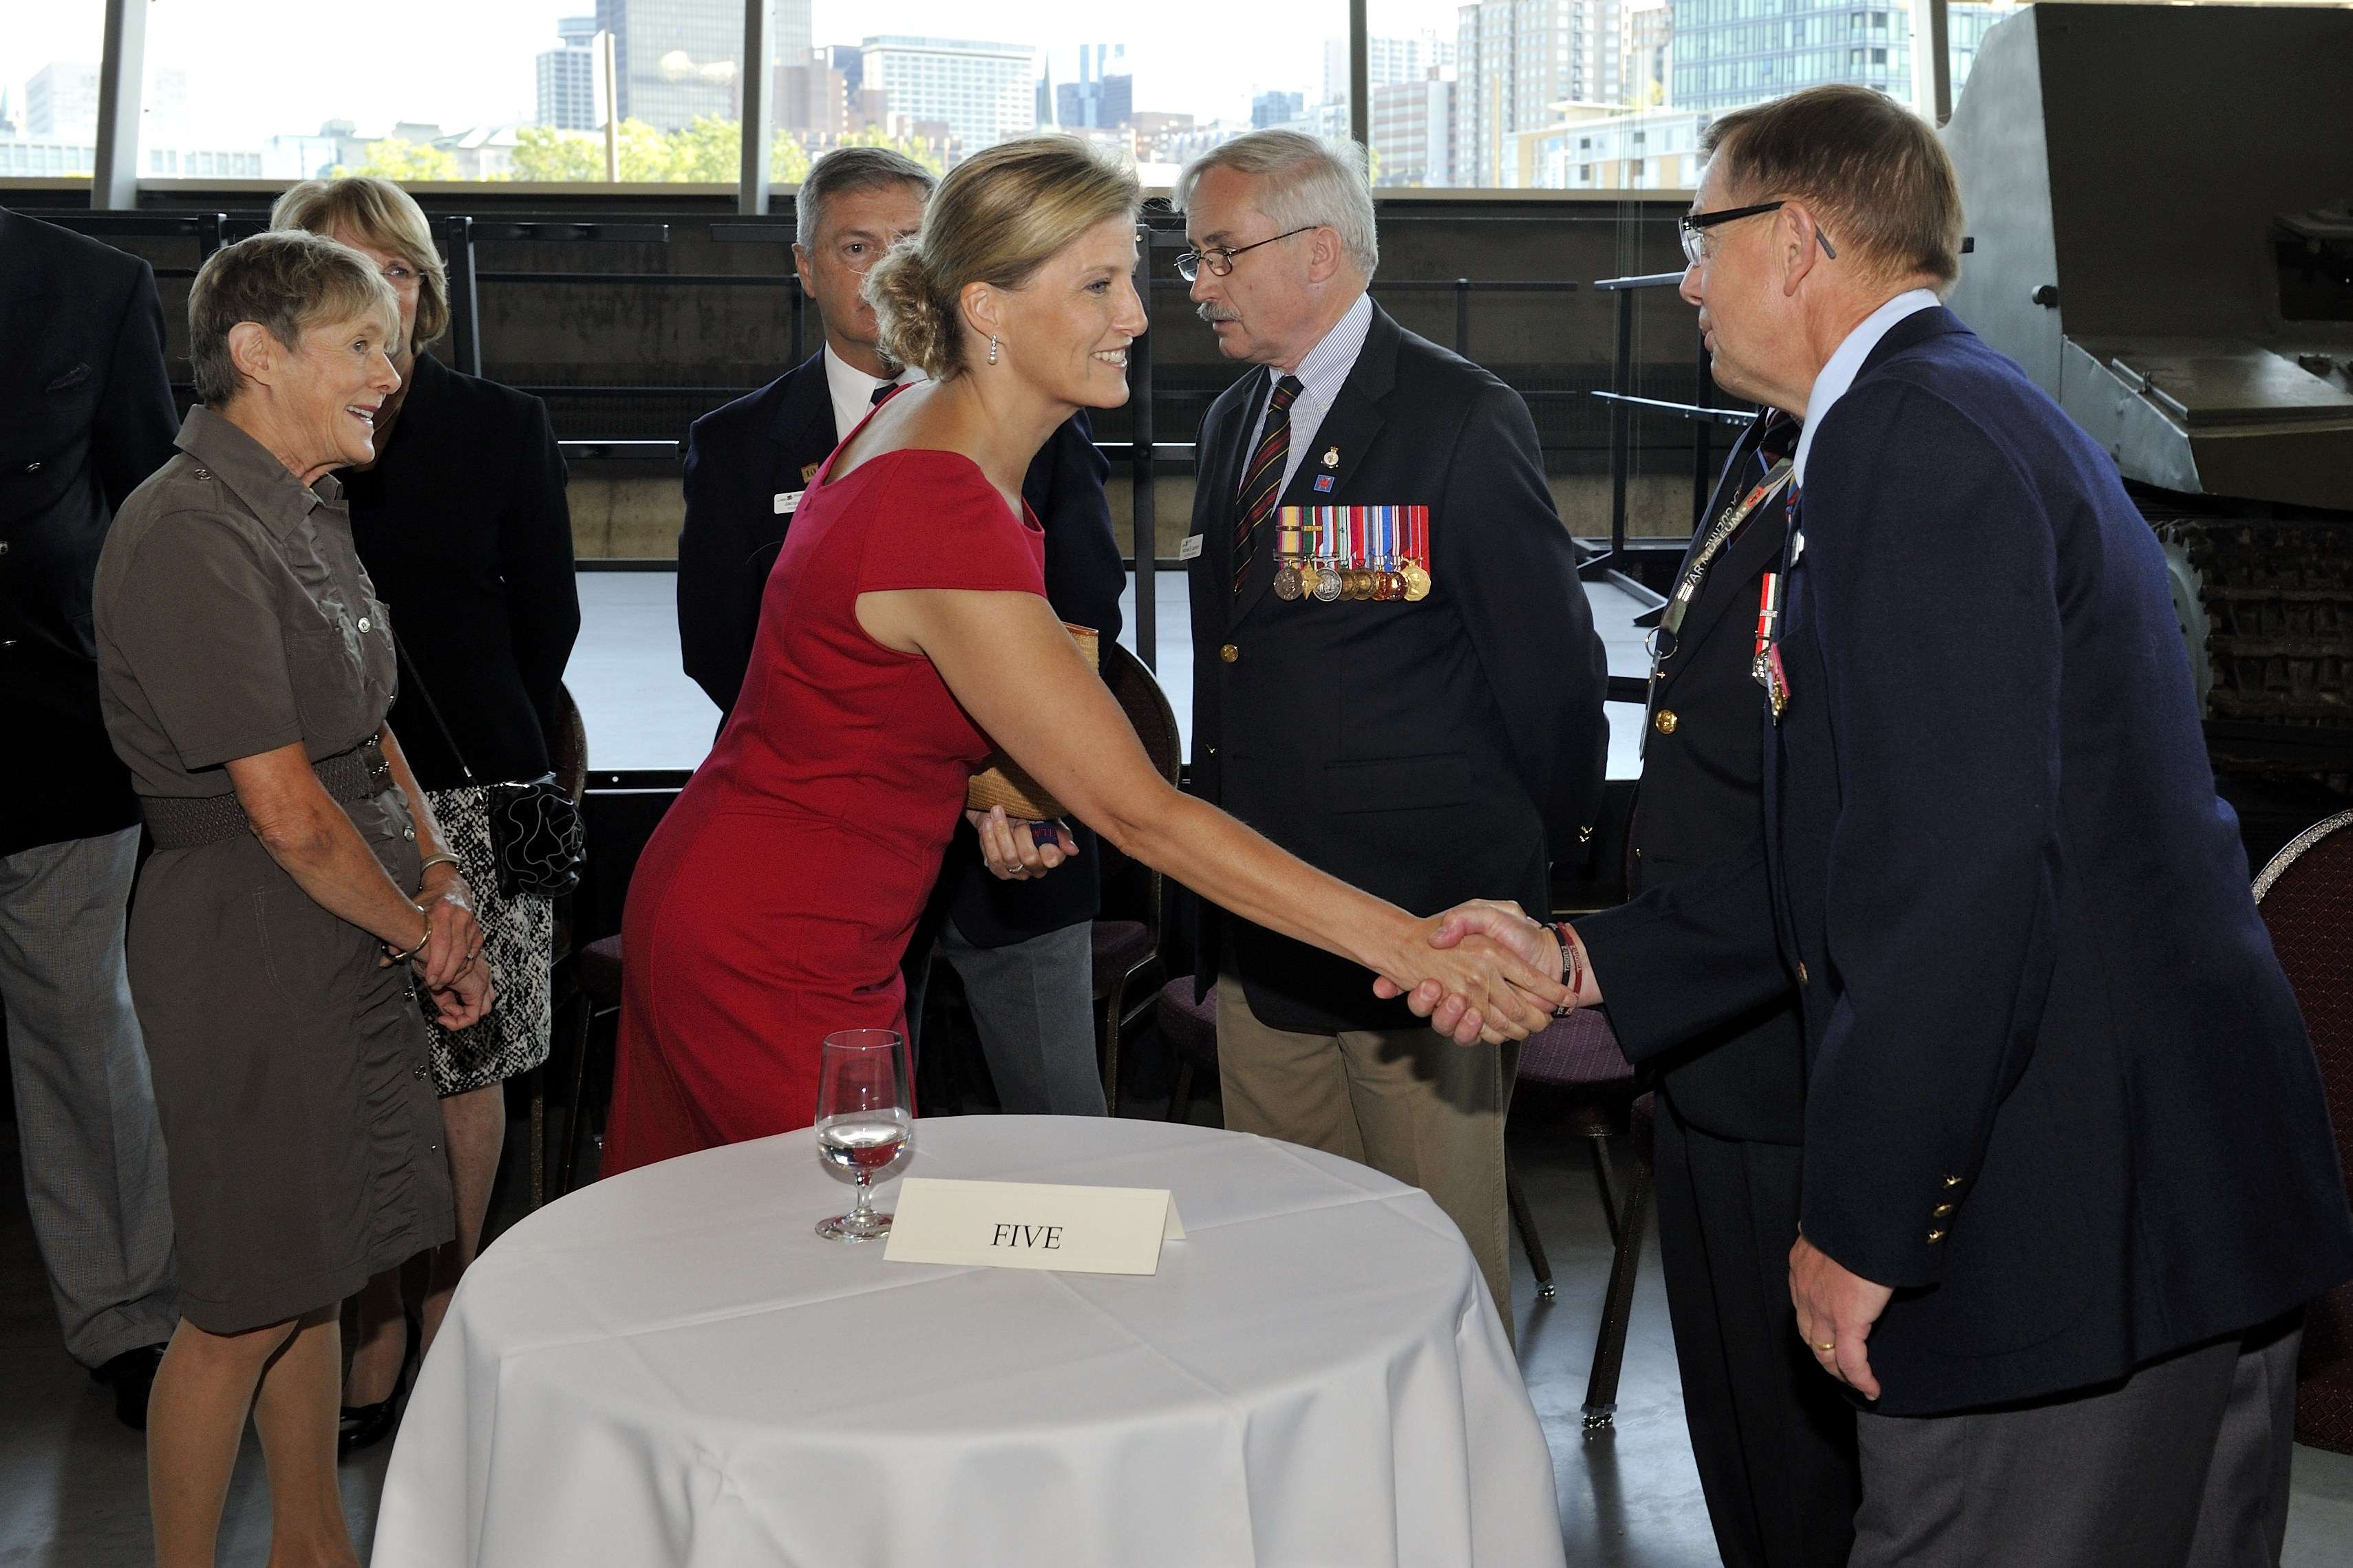 After the tour, Her Excellency and Her Royal Highness met with veterans.